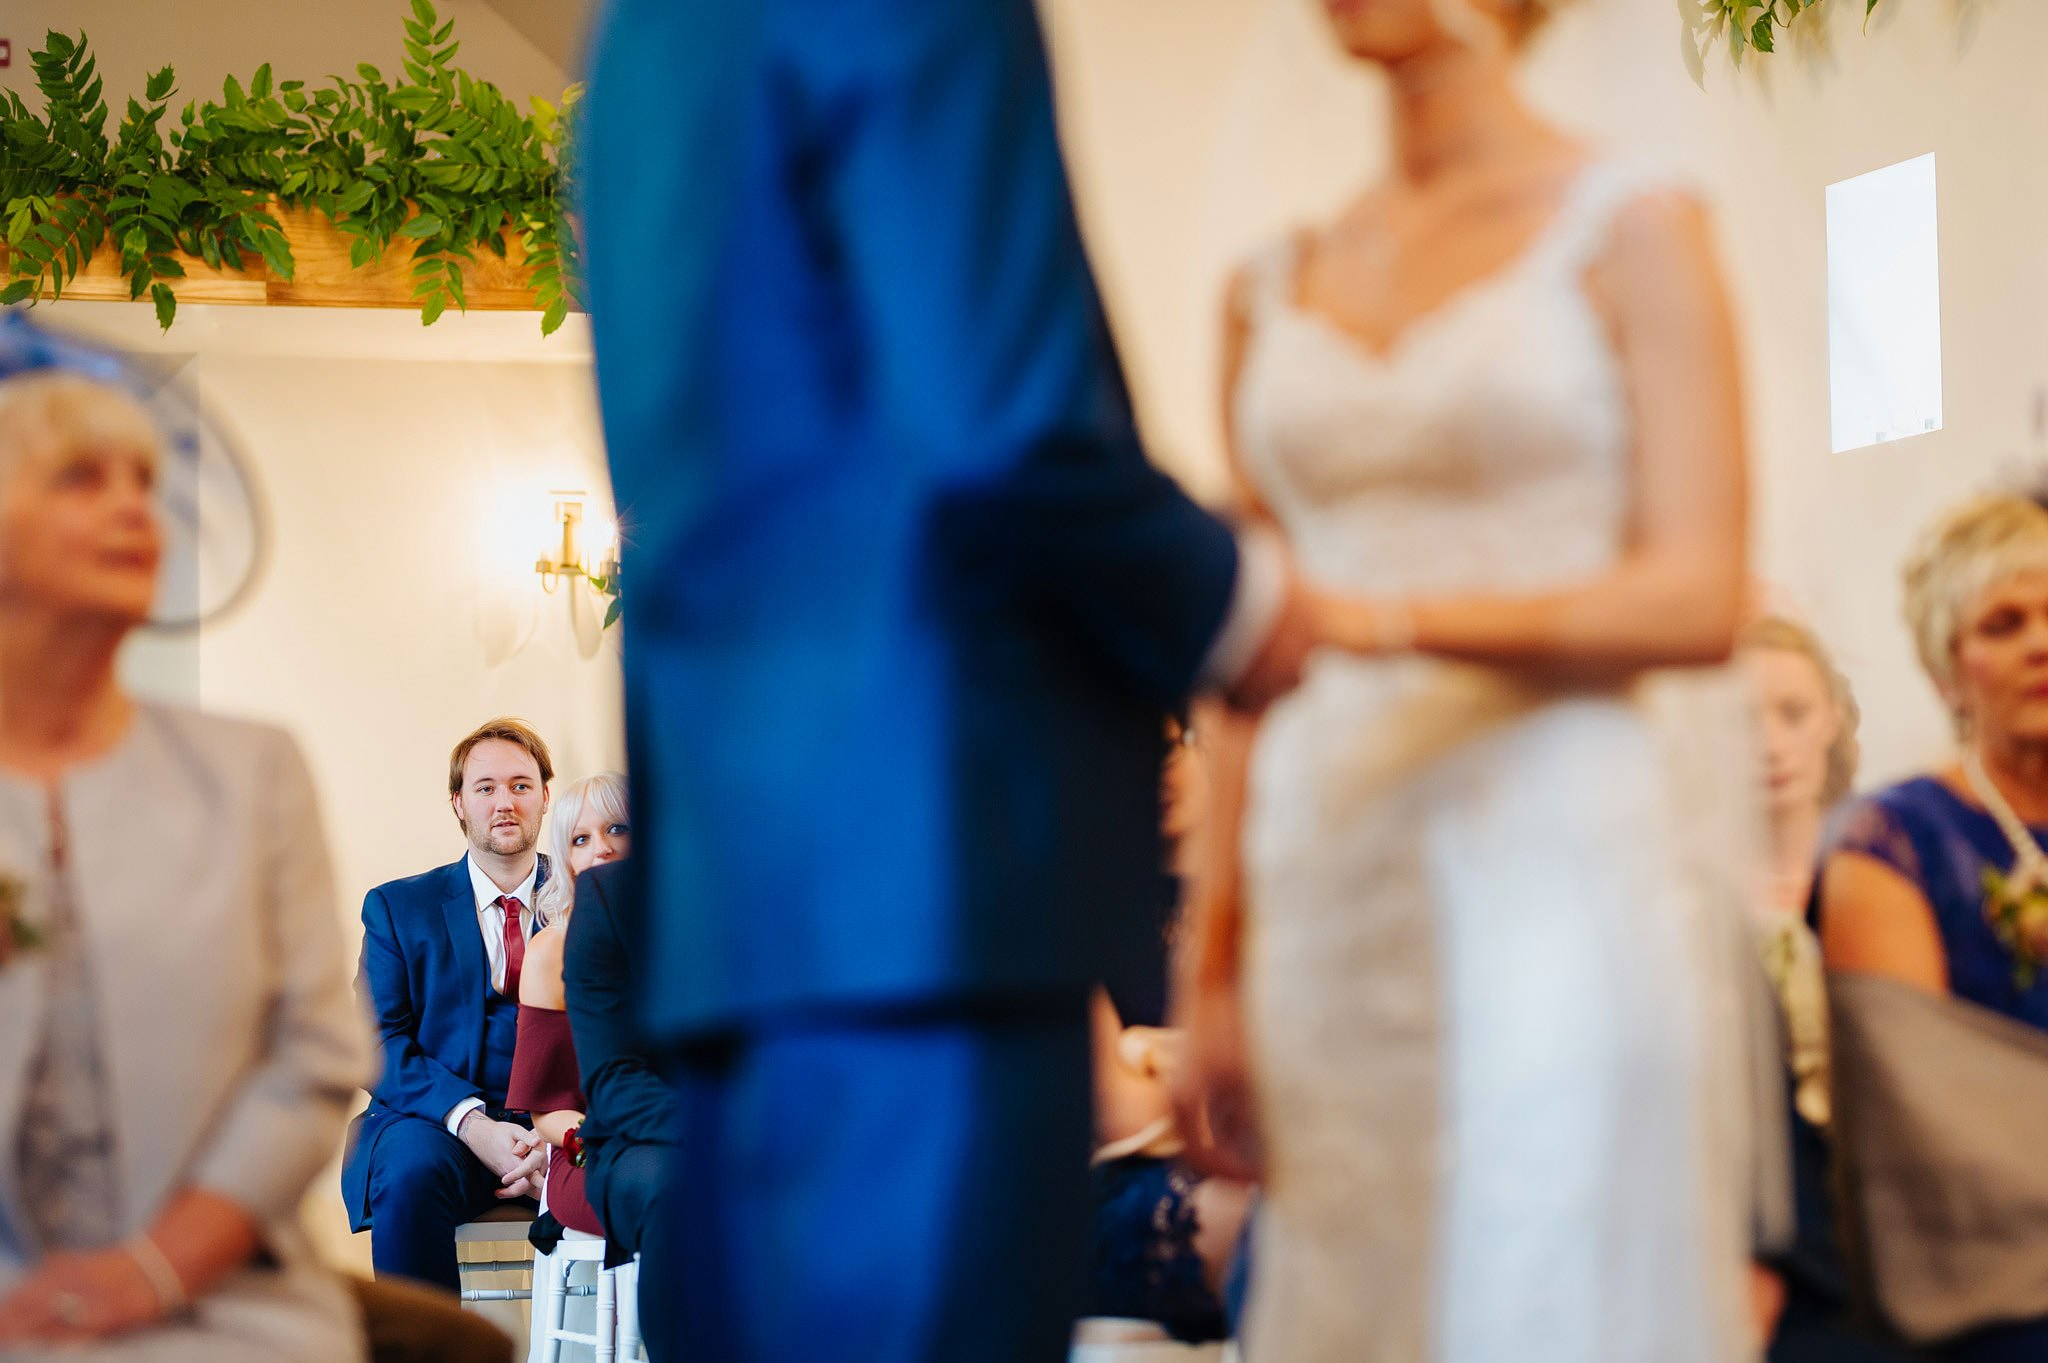 sigma 85mm art review wedding photography 105 - Sigma 85mm F1.4 ART review vs Wedding Photography